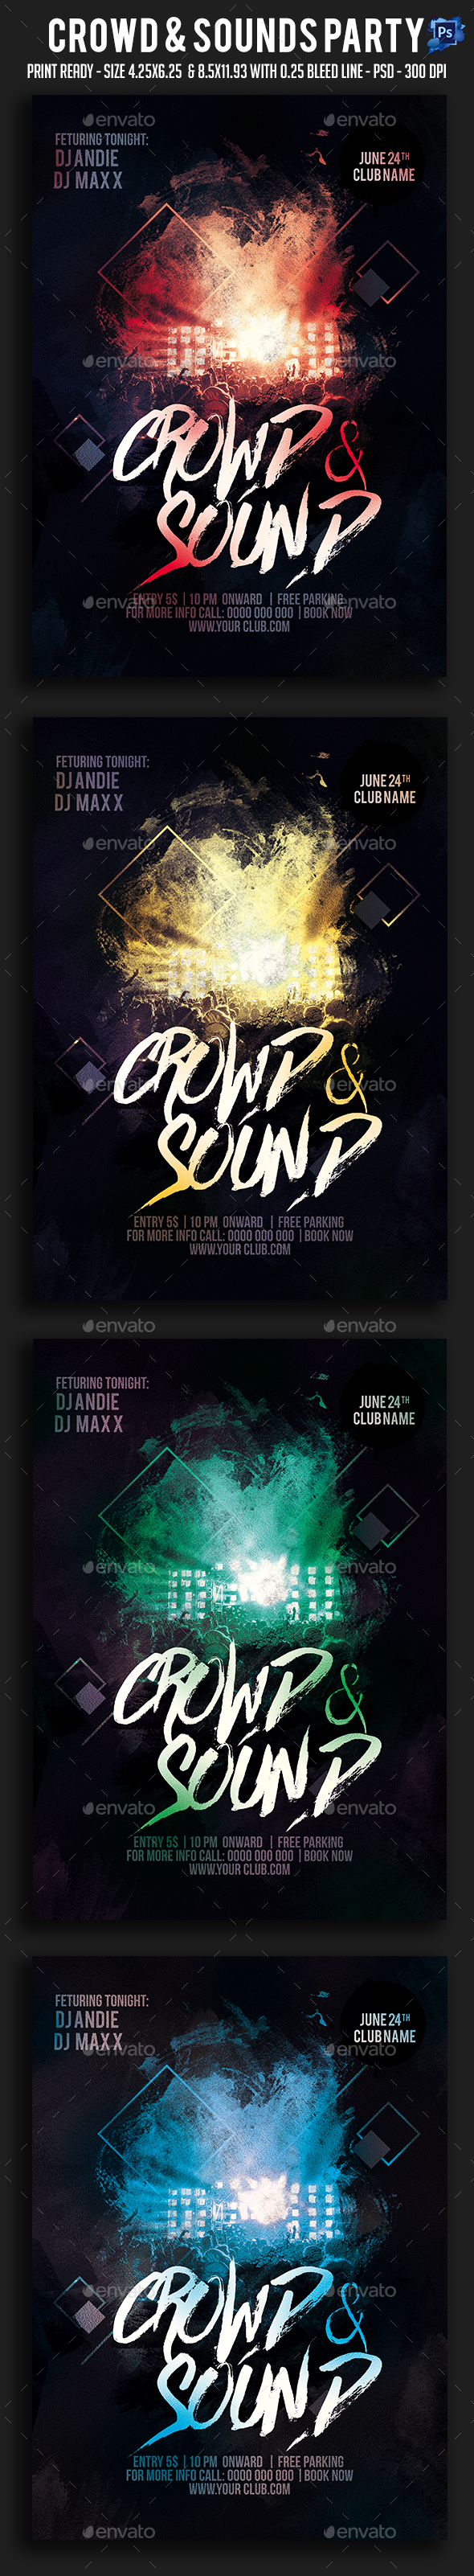 Crowd & Sounds Party Flyer - Clubs & Parties Events